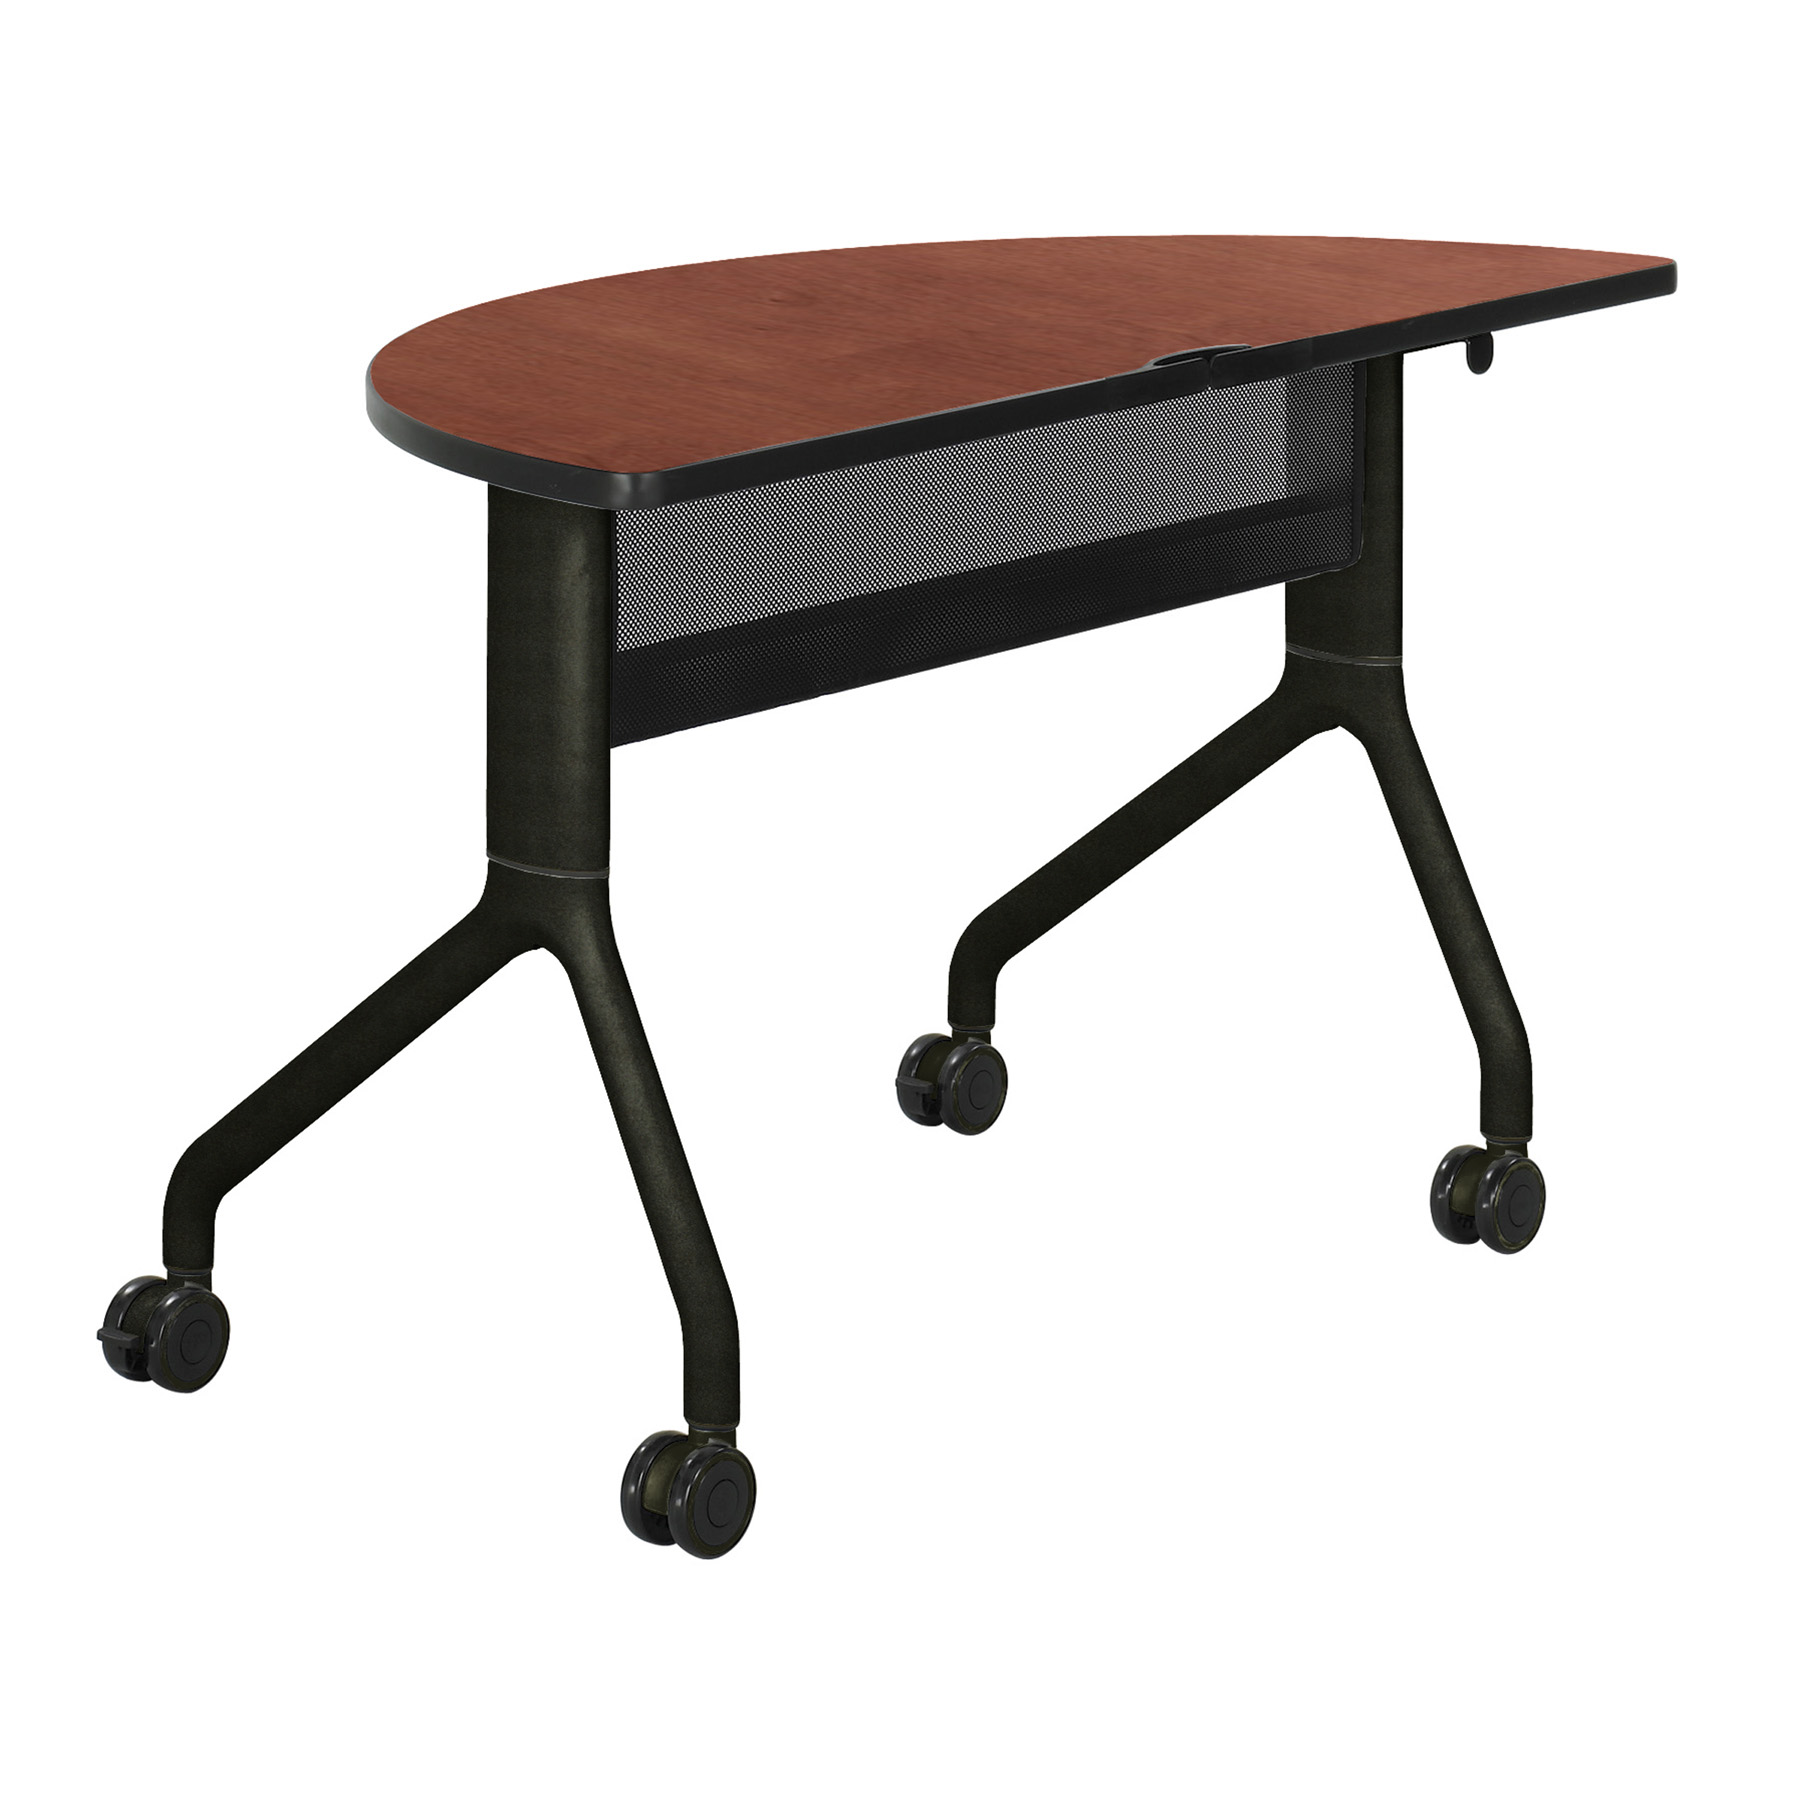 2041CYBL Rumba Office Furniture 48 Inch x 24 Inch Cherry Top With Black Steel Frame Base Half Round Table